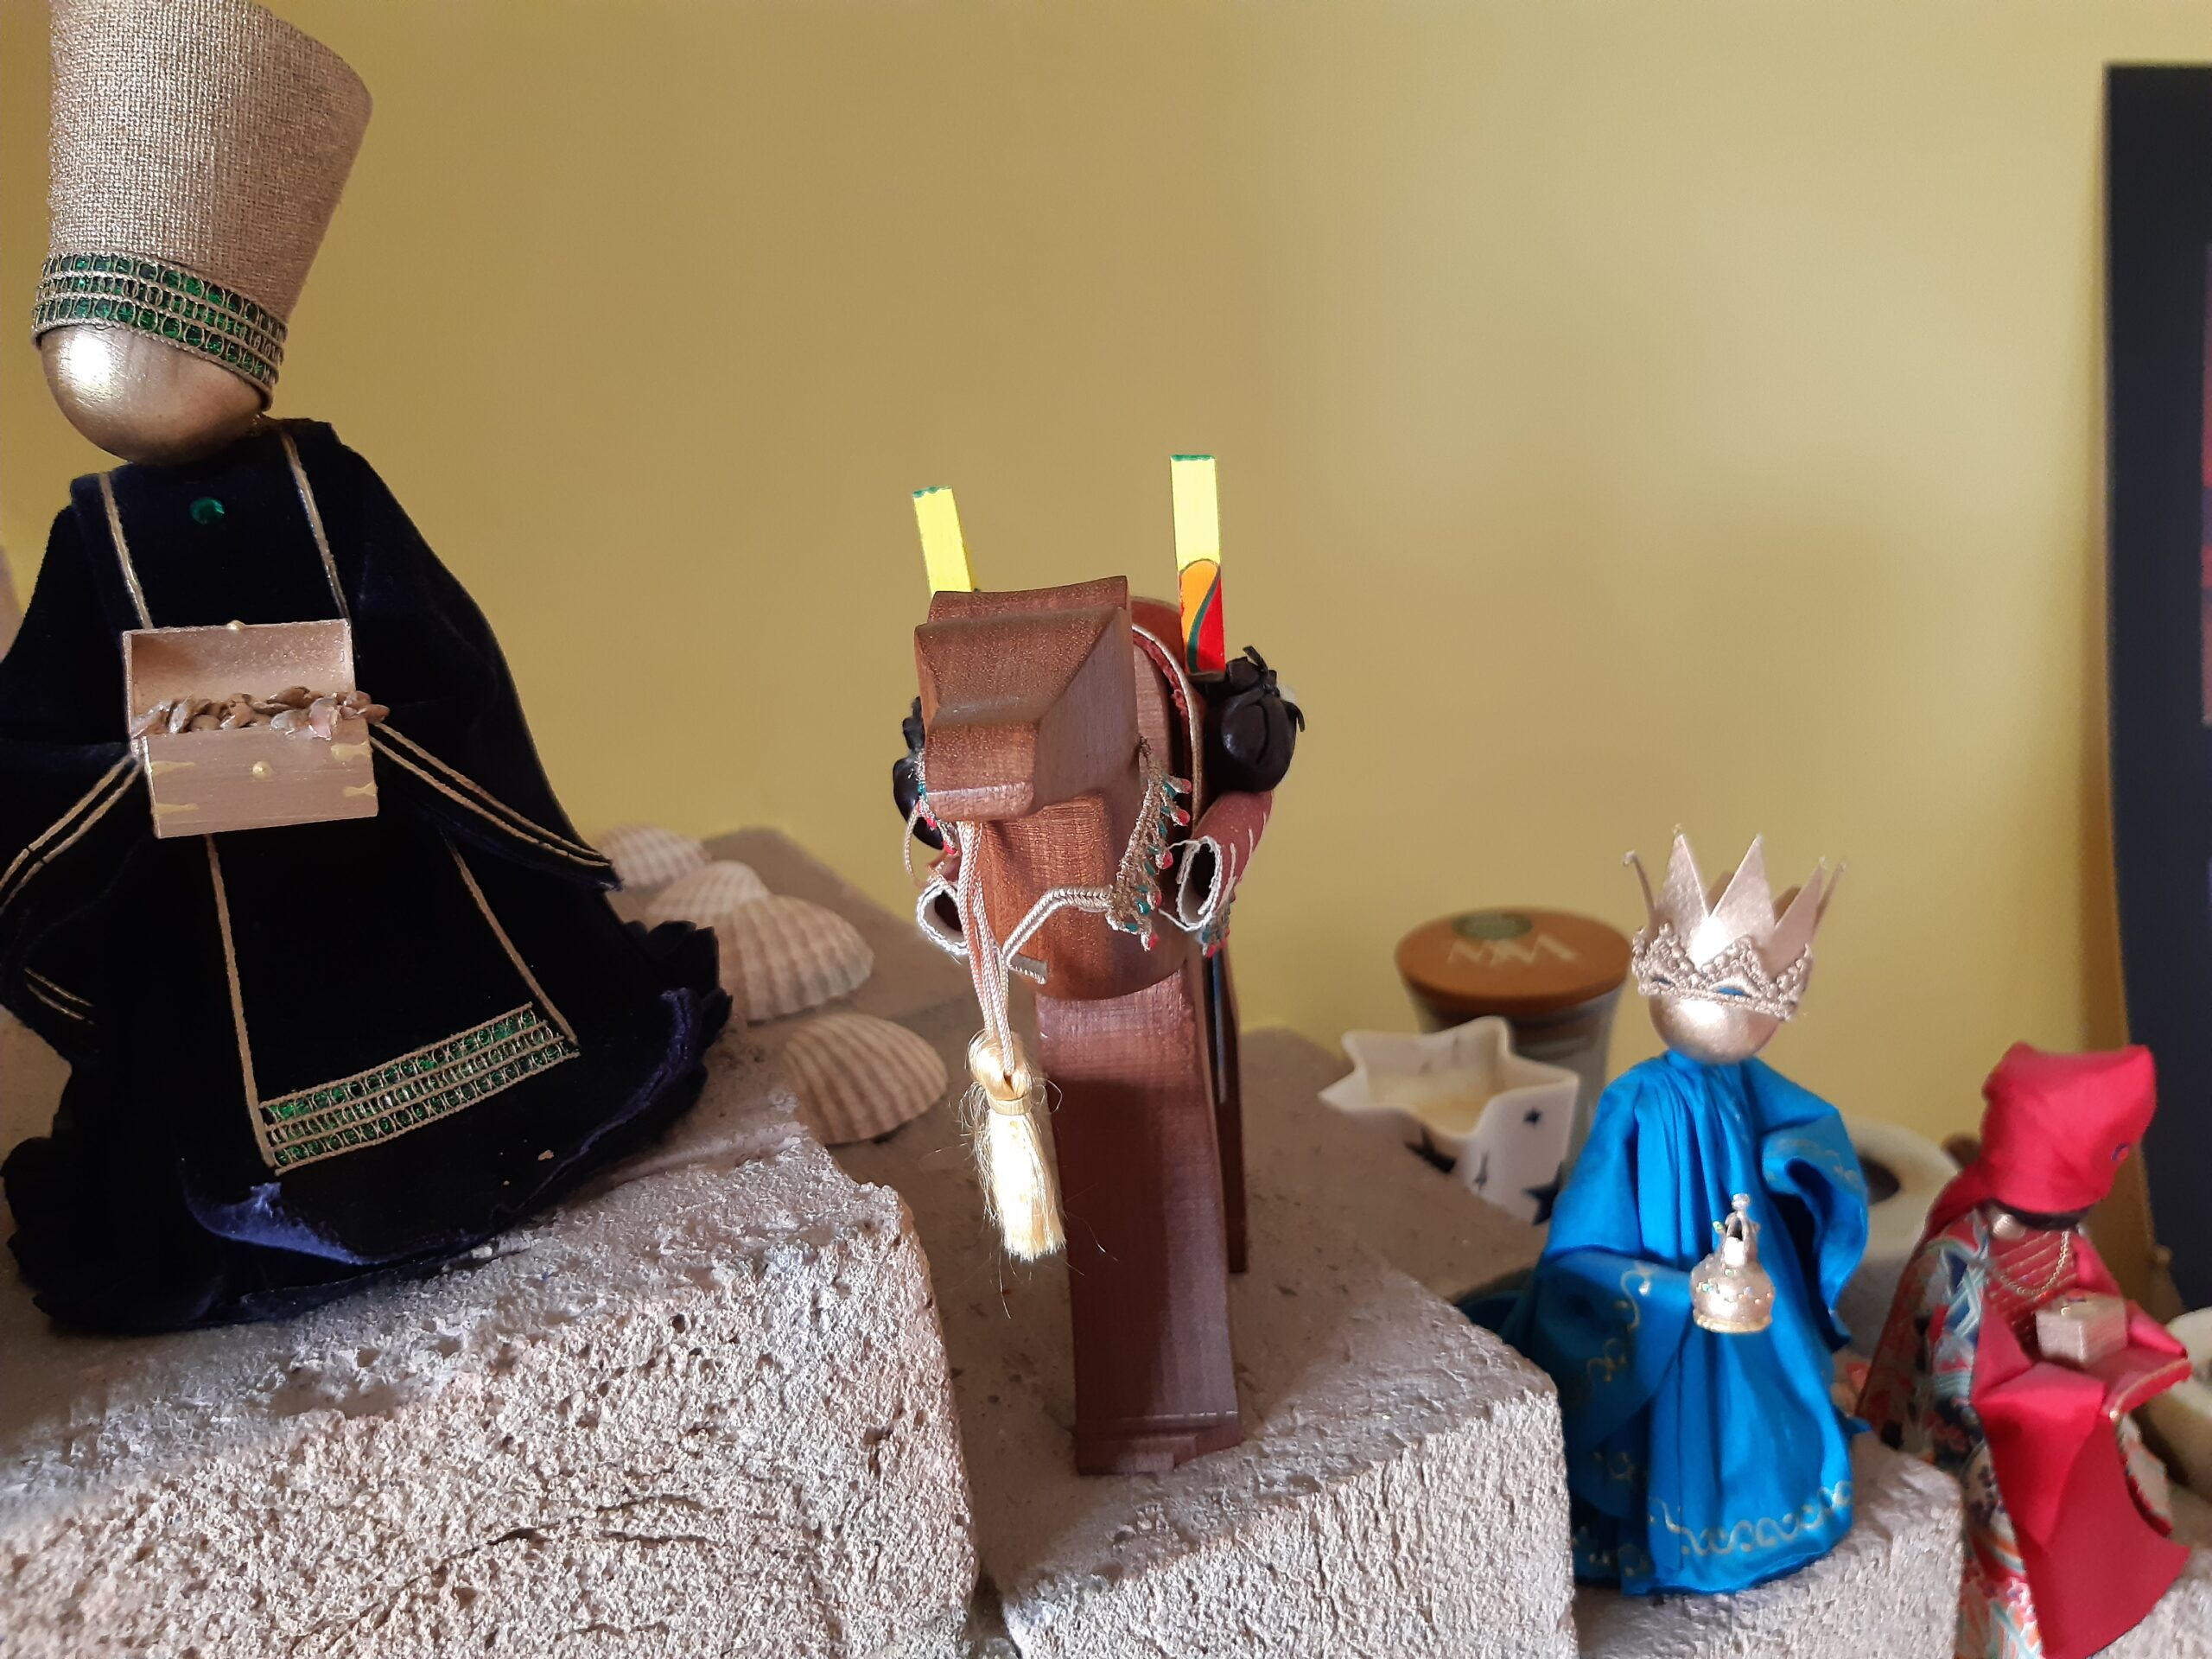 Baby Jesus – not a cute gift